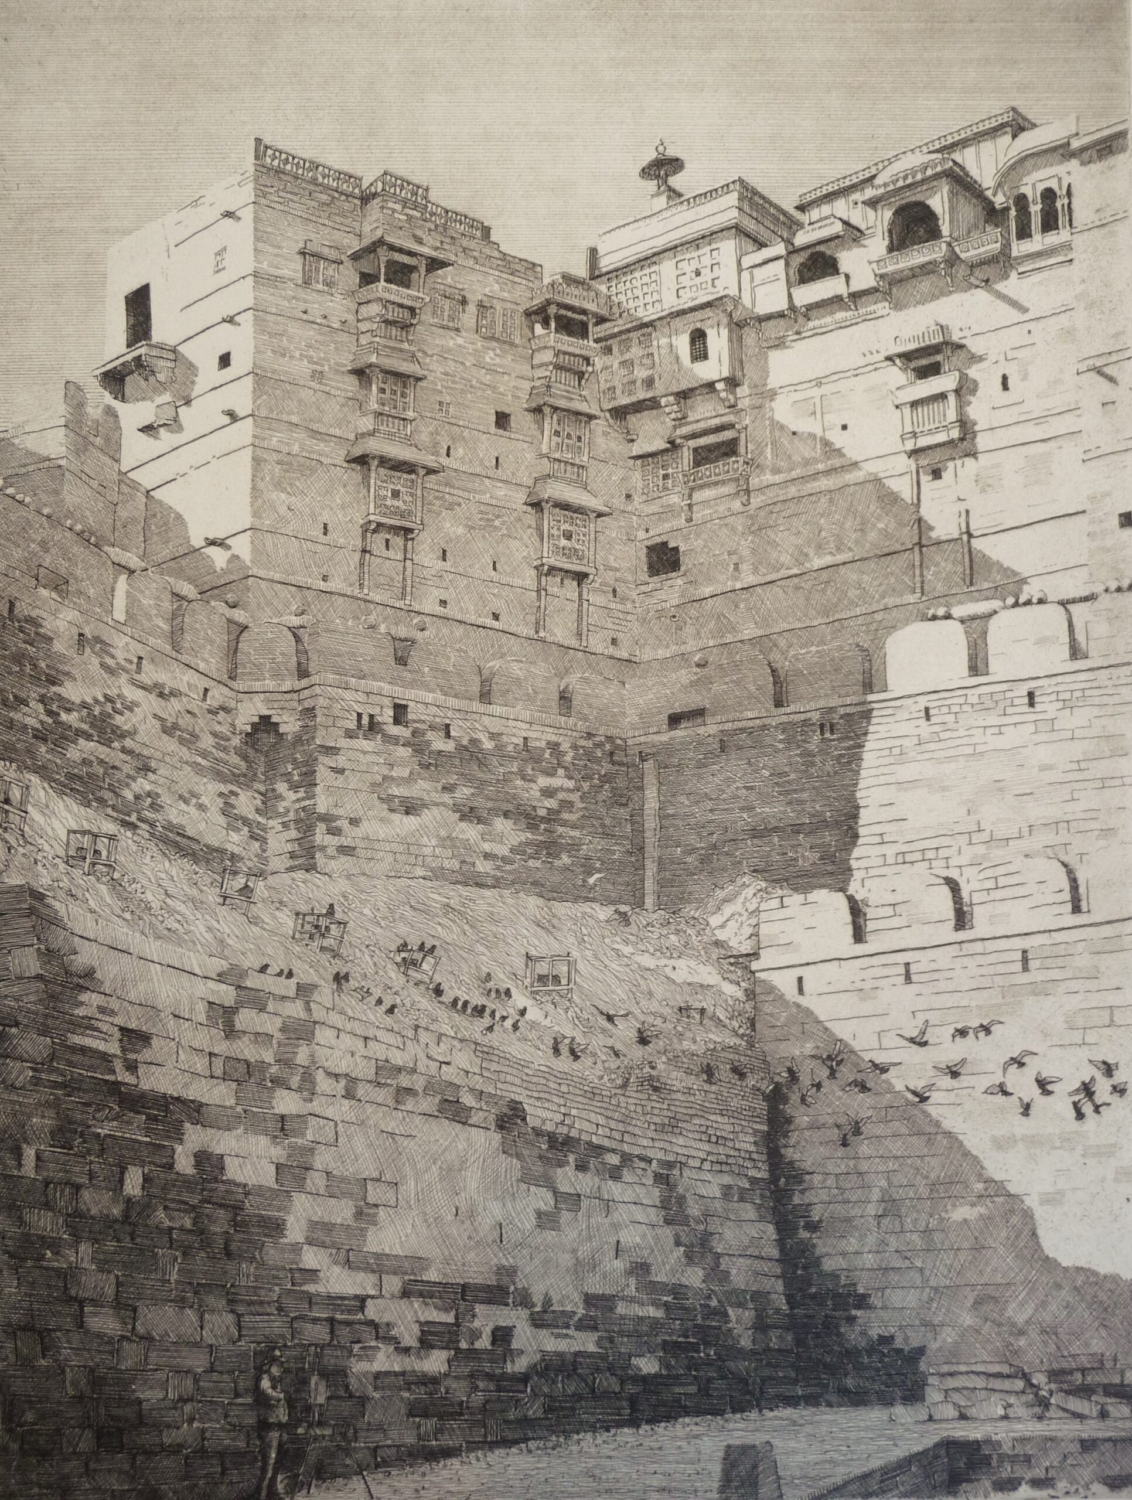 Etching of the fort at Jaisalmer Rajasthan